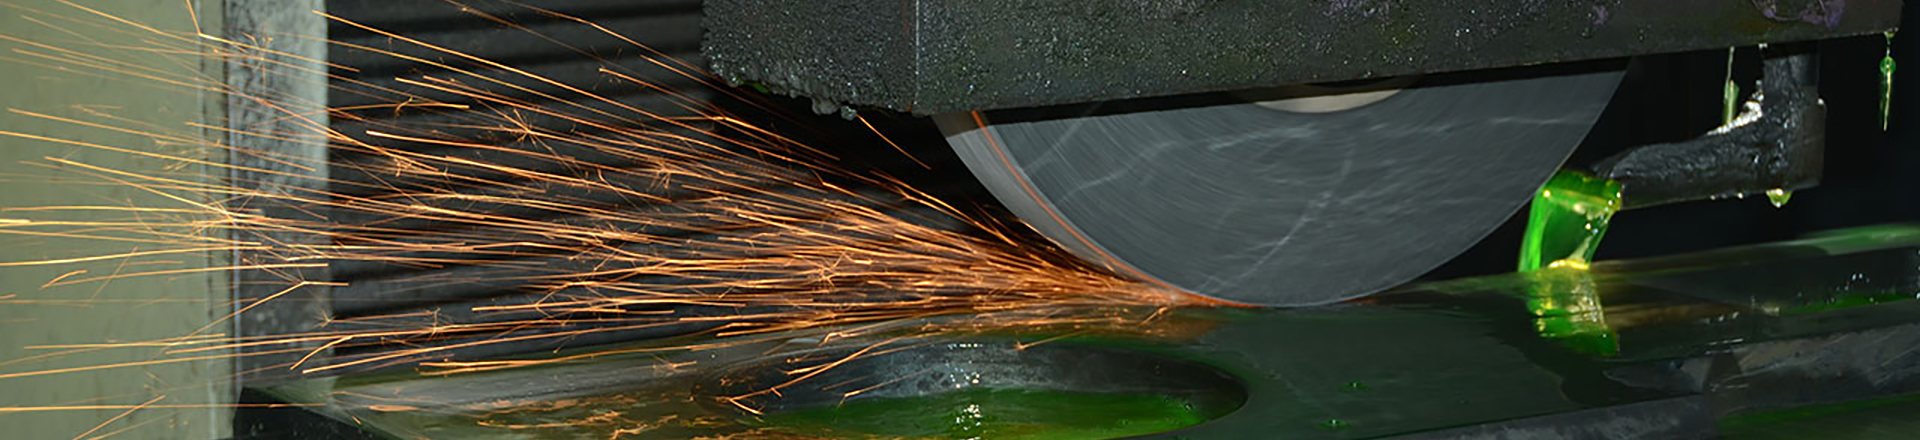 precision surface grinding